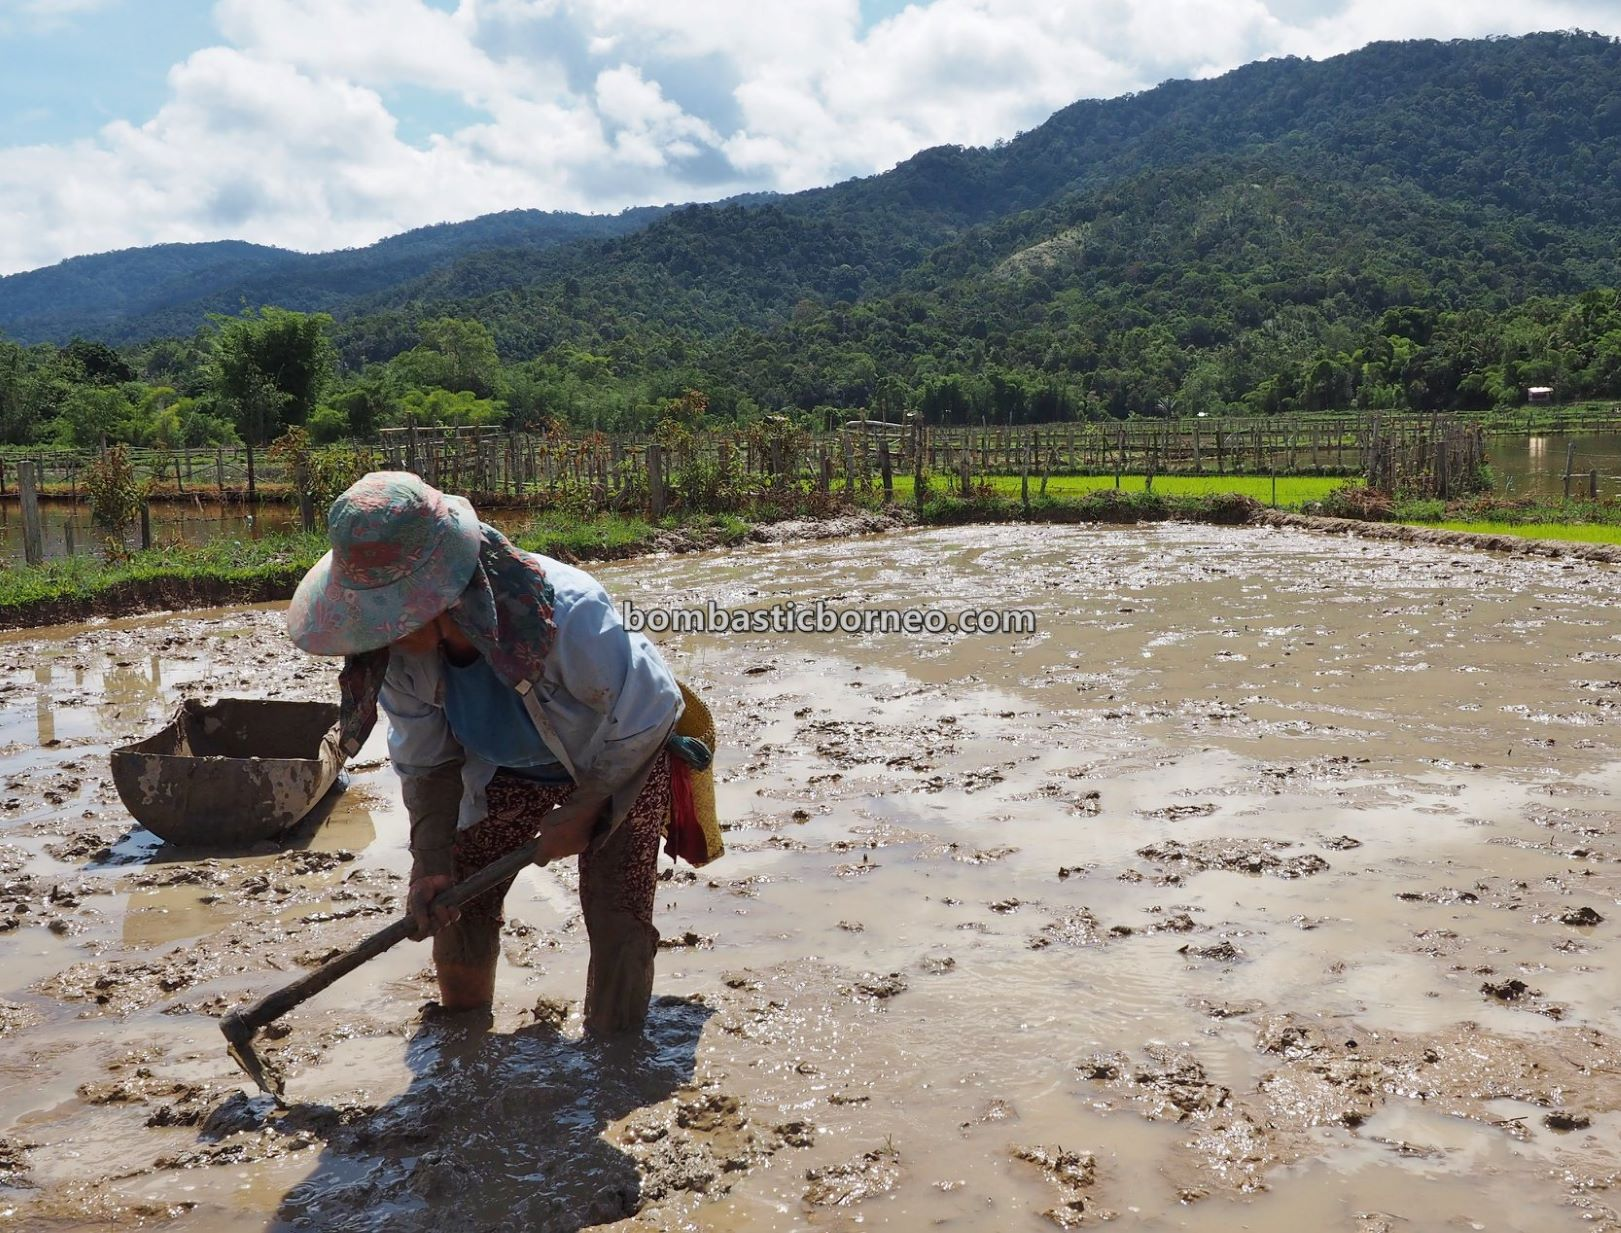 SRI, organic rice, paddy planting, traditional, highlands village, Long Langai, Sarawak, Malaysia, Borneo, native, dayak, Tourism, tourist attraction, travel guide, orang ulu,